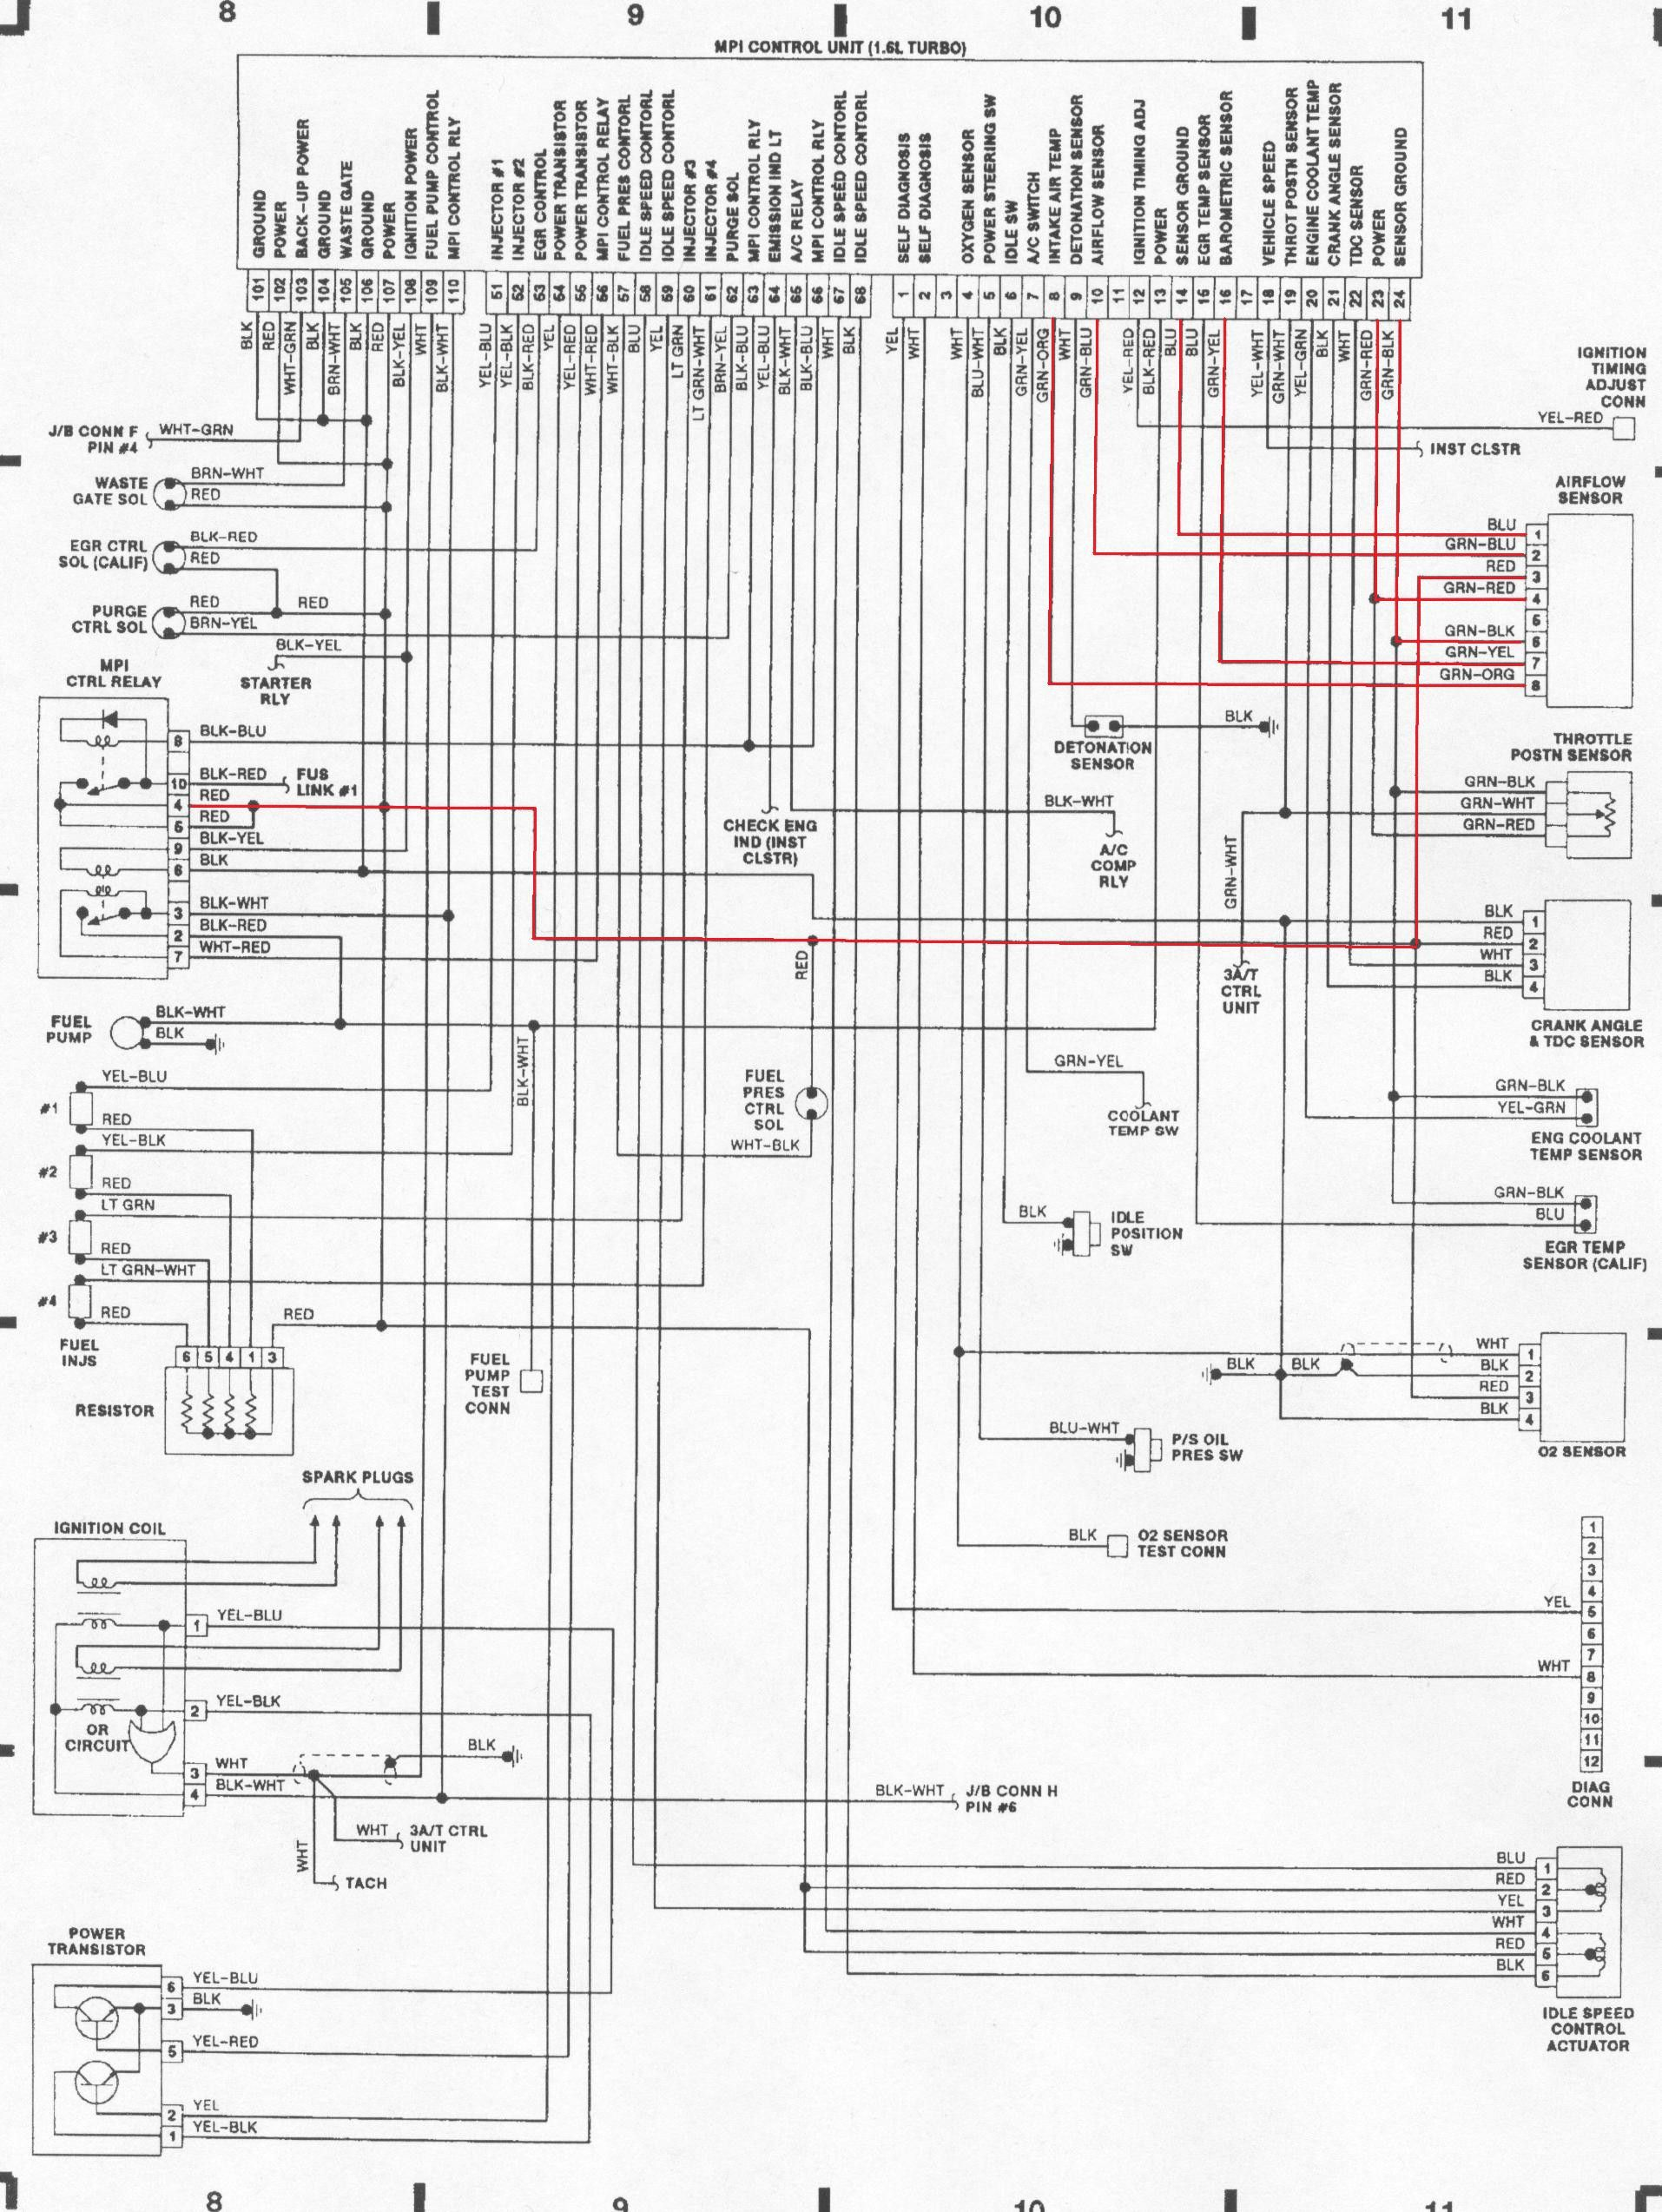 4g91 carburetor wiring diagram 2003 lancer radio 4g15 schematic pdf virtual fretboard inside mitsubishi mirage gmc fuse box diagrams